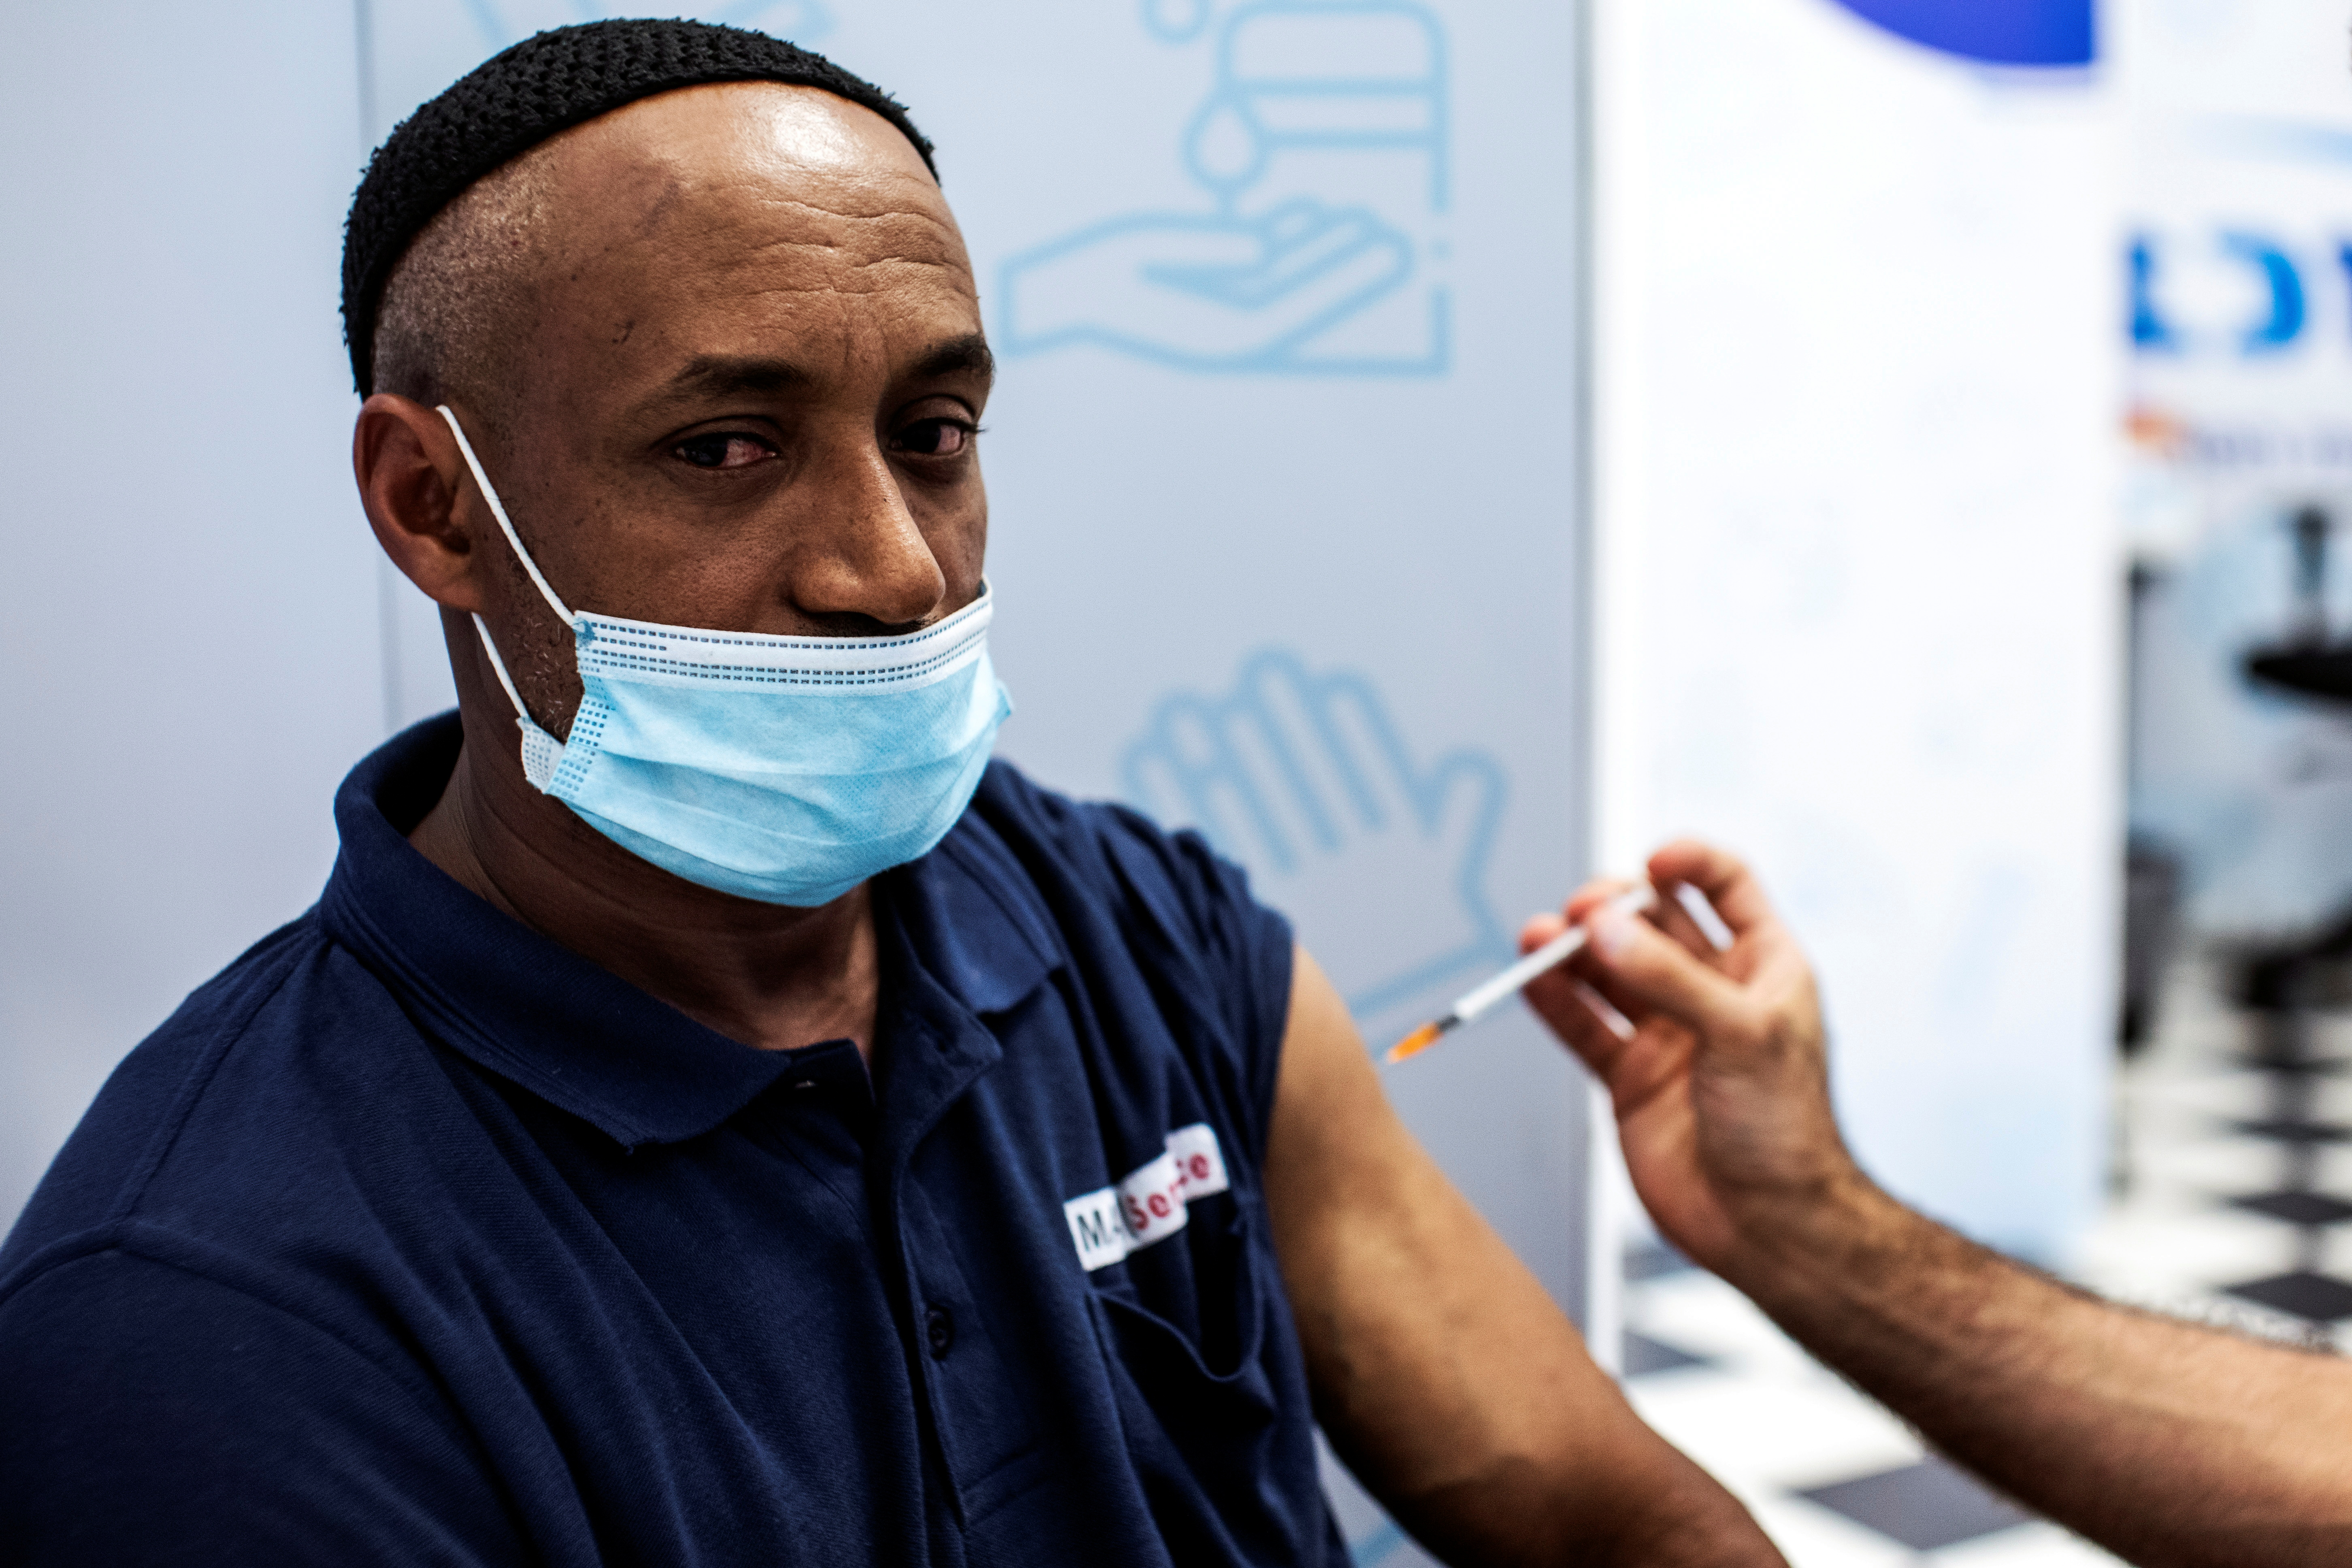 Israeli Izhak Mesfin, 44 years old, receives a third shot of coronavirus disease (COVID-19) vaccine as country launches booster shots for over 30-year-olds, in Rishon Lezion, Israel August 24, 2021. REUTERS/ Nir Elias